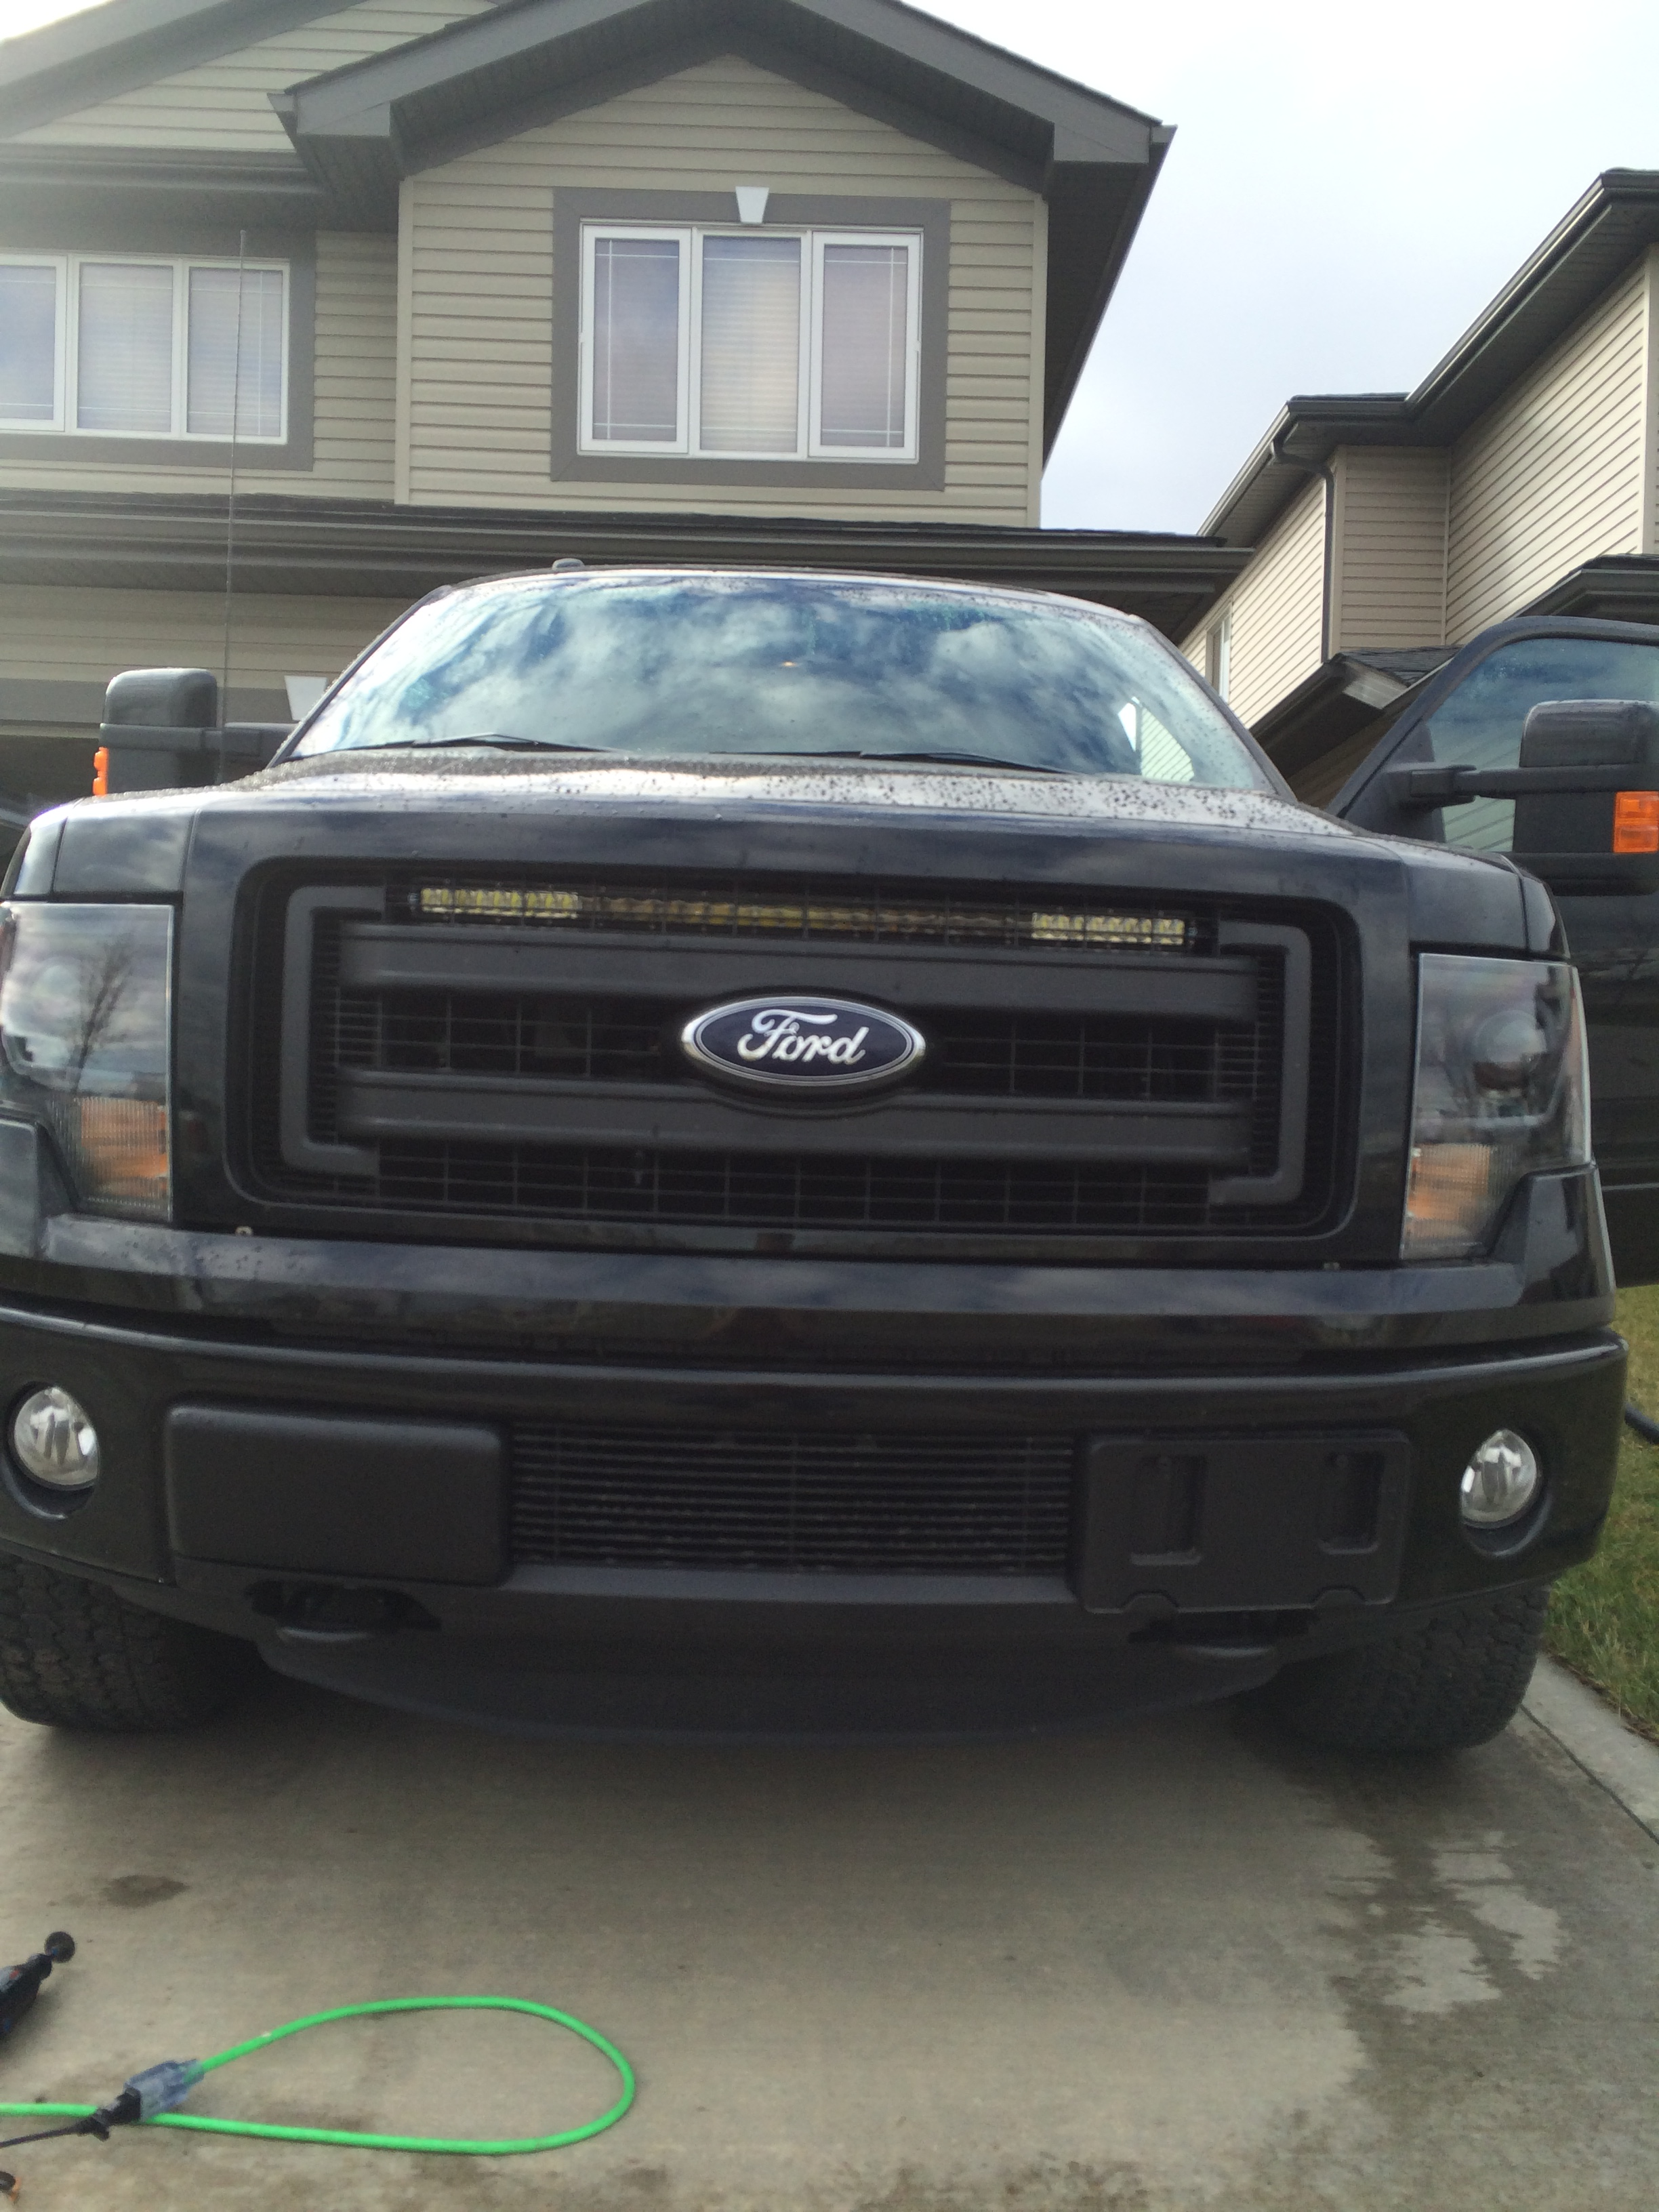 Led Lightbar Mounting Options Locations In 2014 Lariat